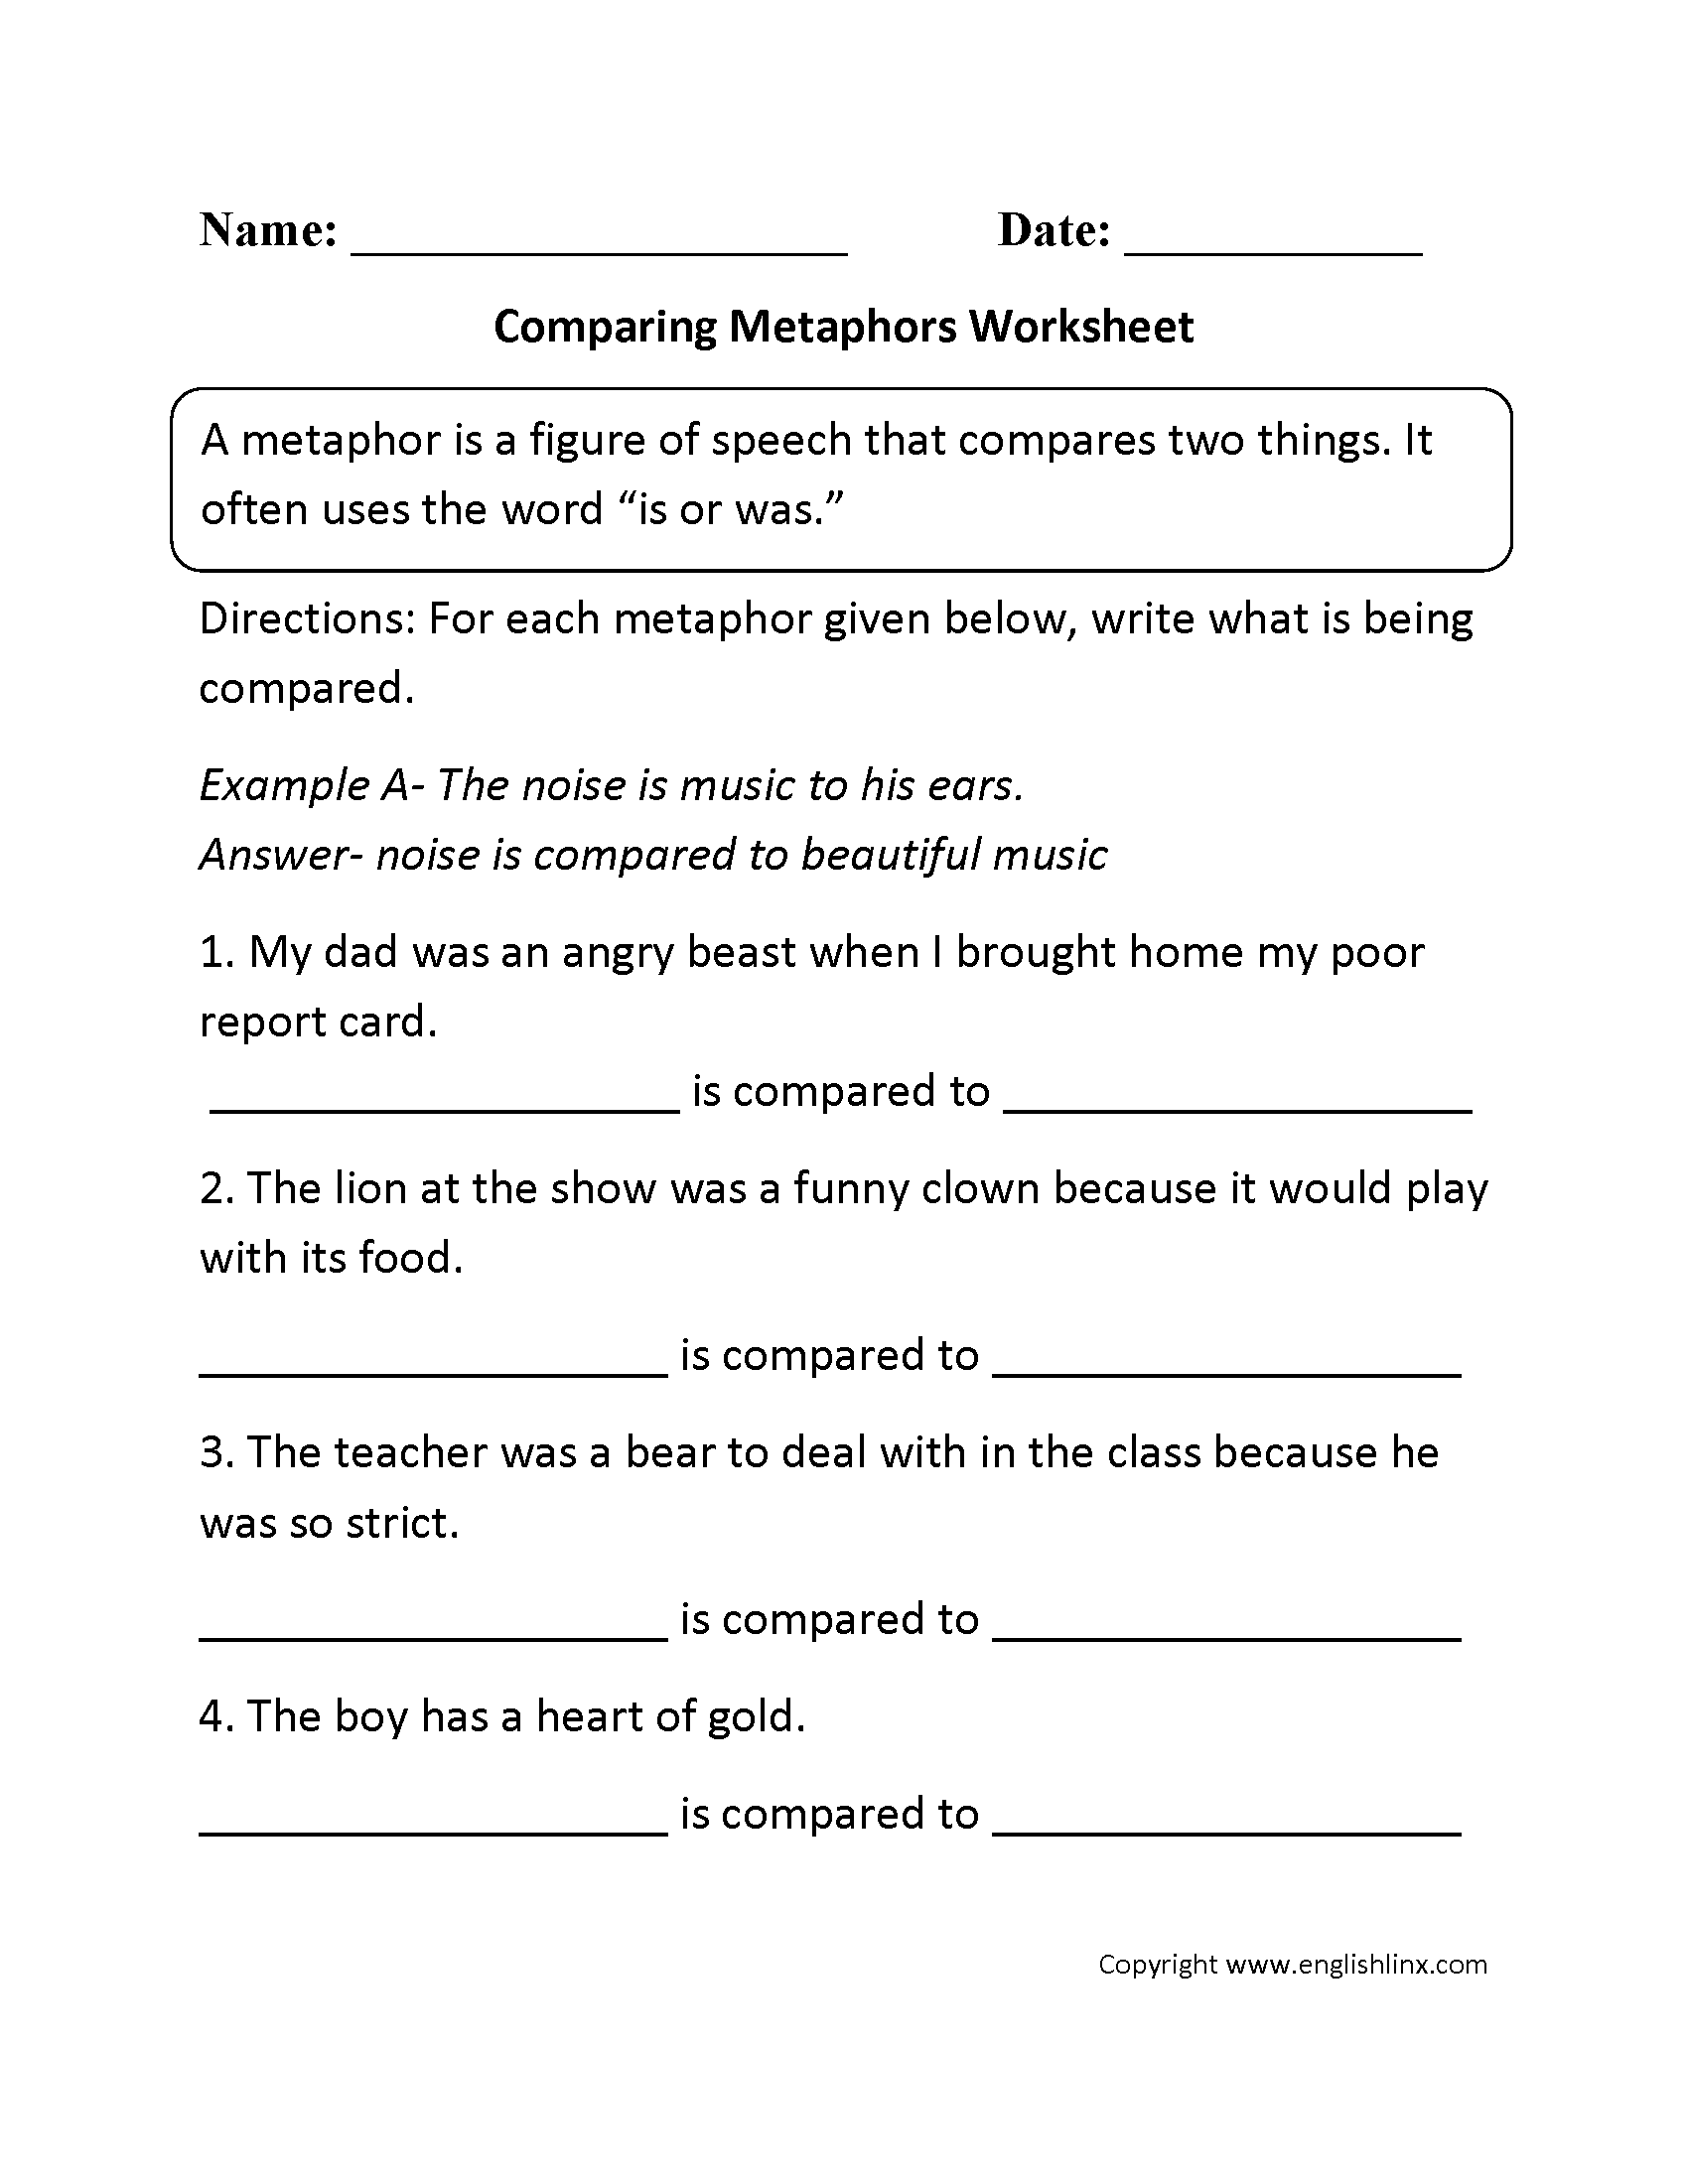 Figures of Speech Worksheets | Teach Literature | Pinterest ...